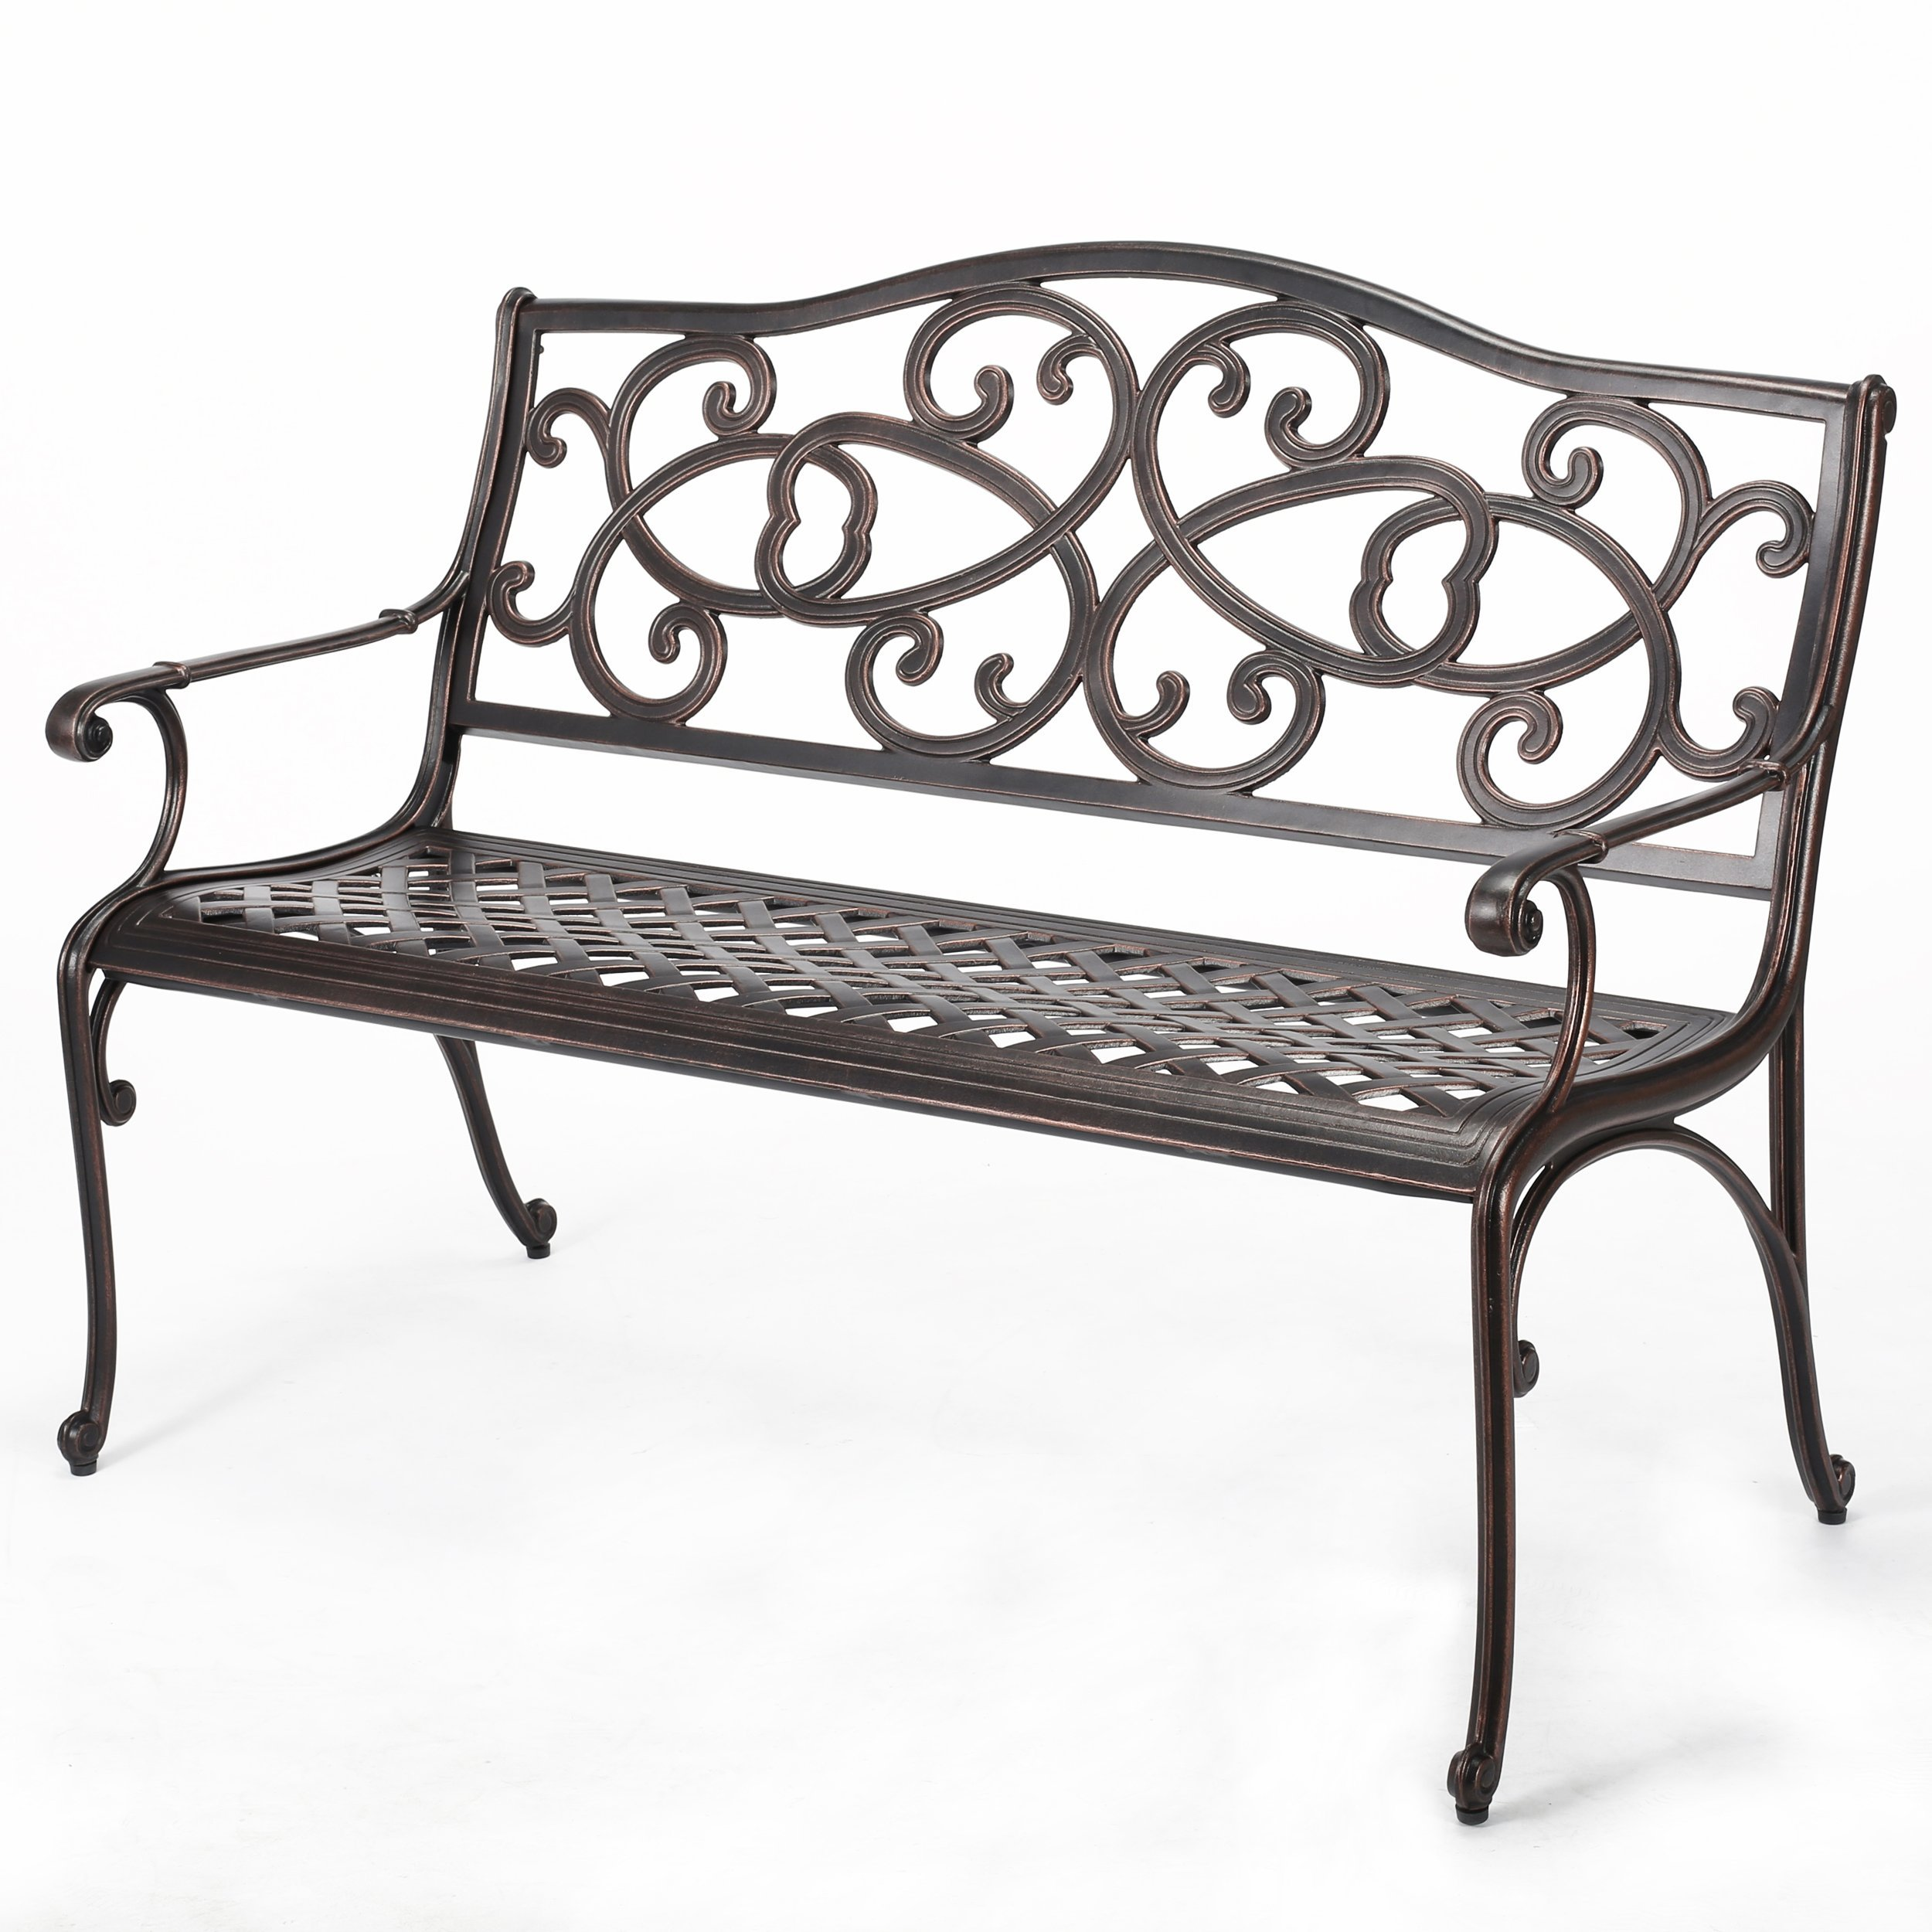 curved ideas garden home teak bench metal design